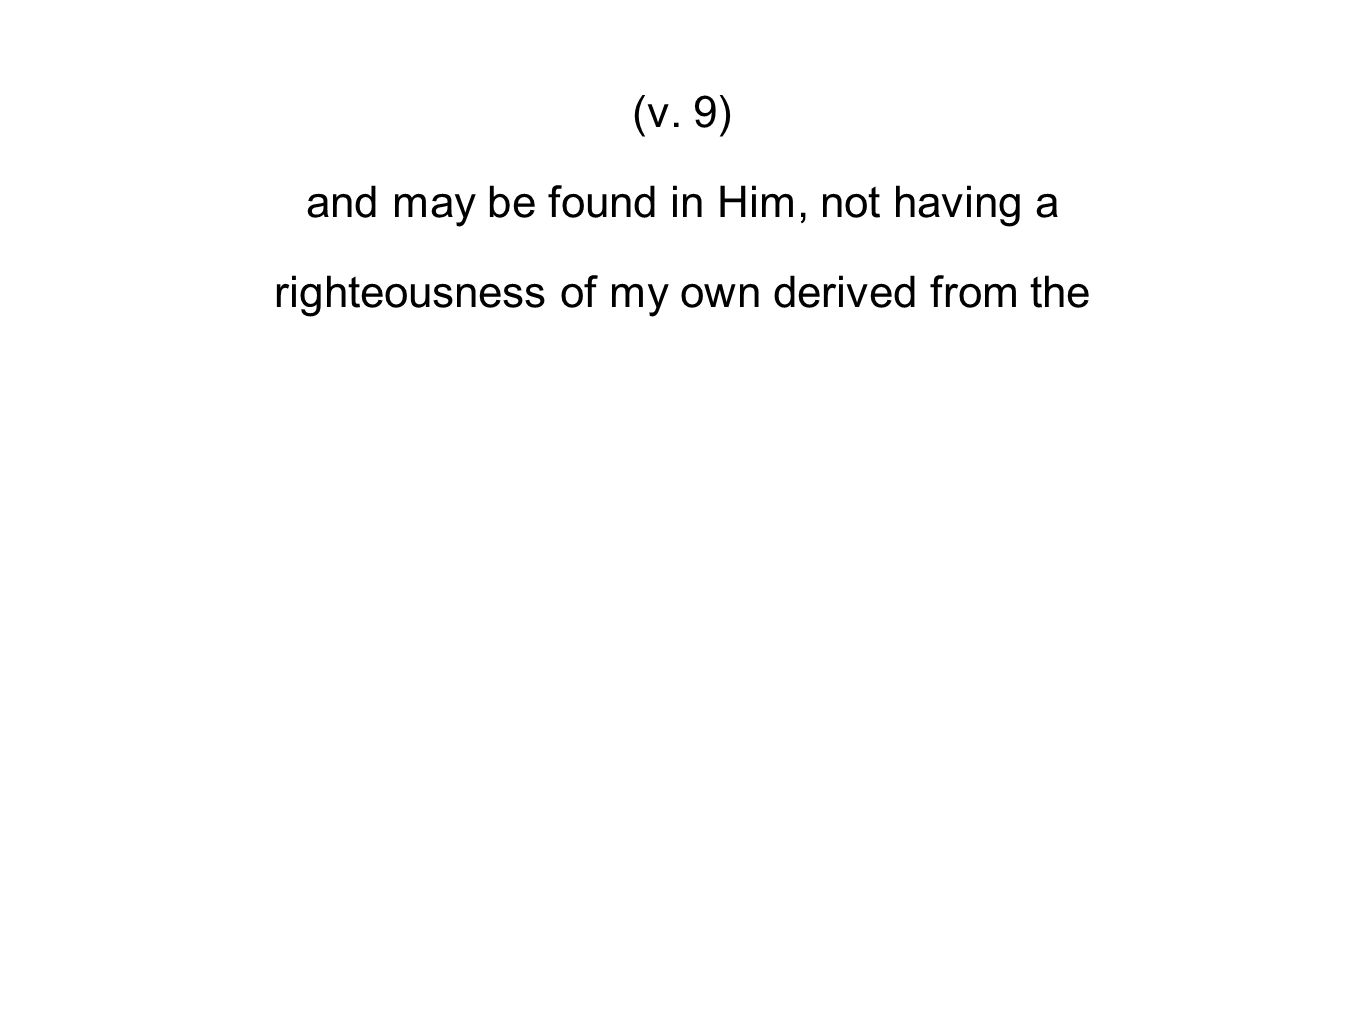 (v. 9) and may be found in Him, not having a righteousness of my own derived from the